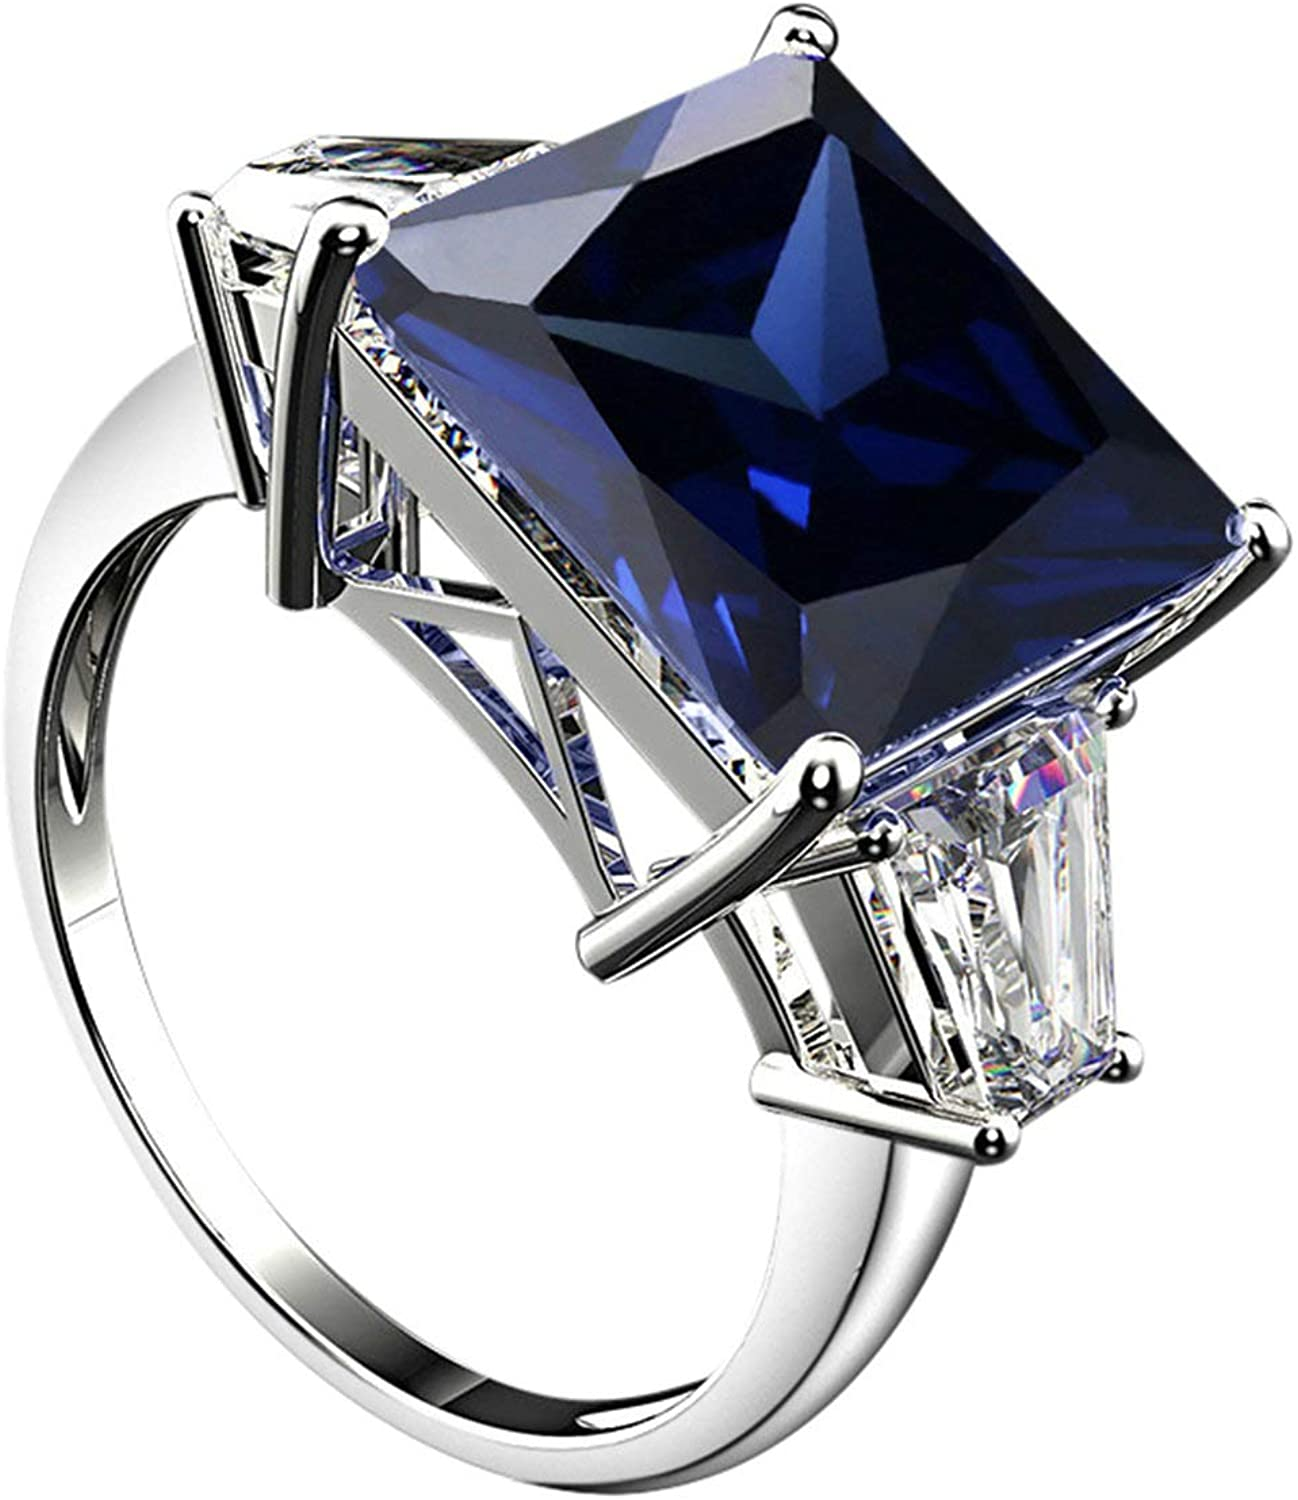 AMDXD 925 Silver Ring for Women Princess Cut Light Blue Cubic Zirconia 12x12mm Wedding Band Her